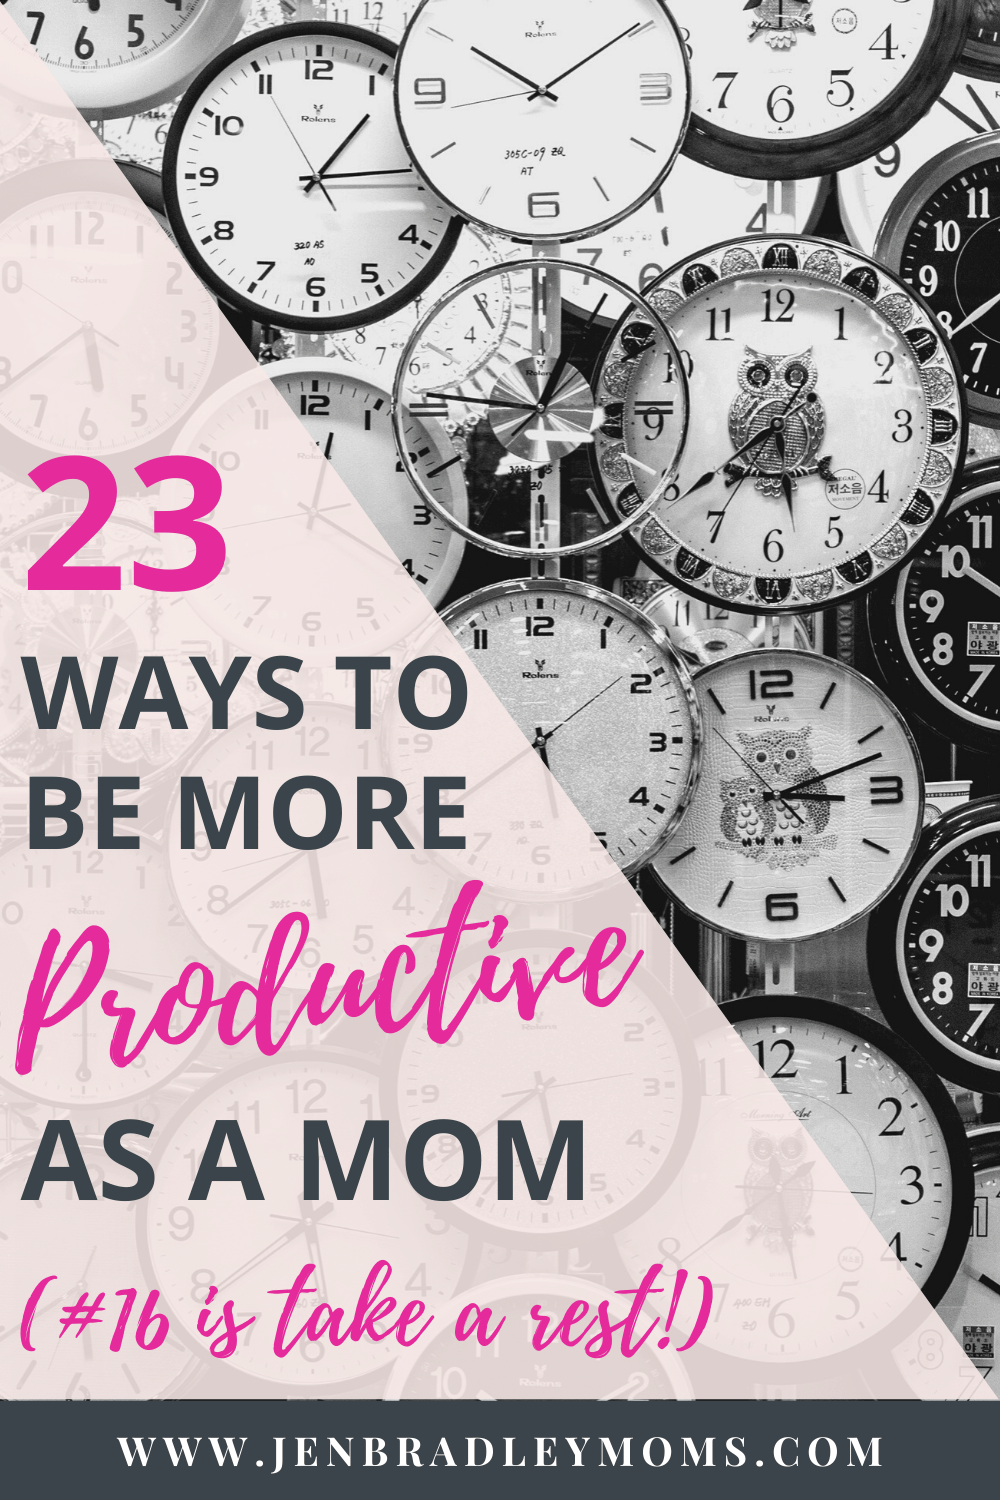 How to Be More Productive as a Mom